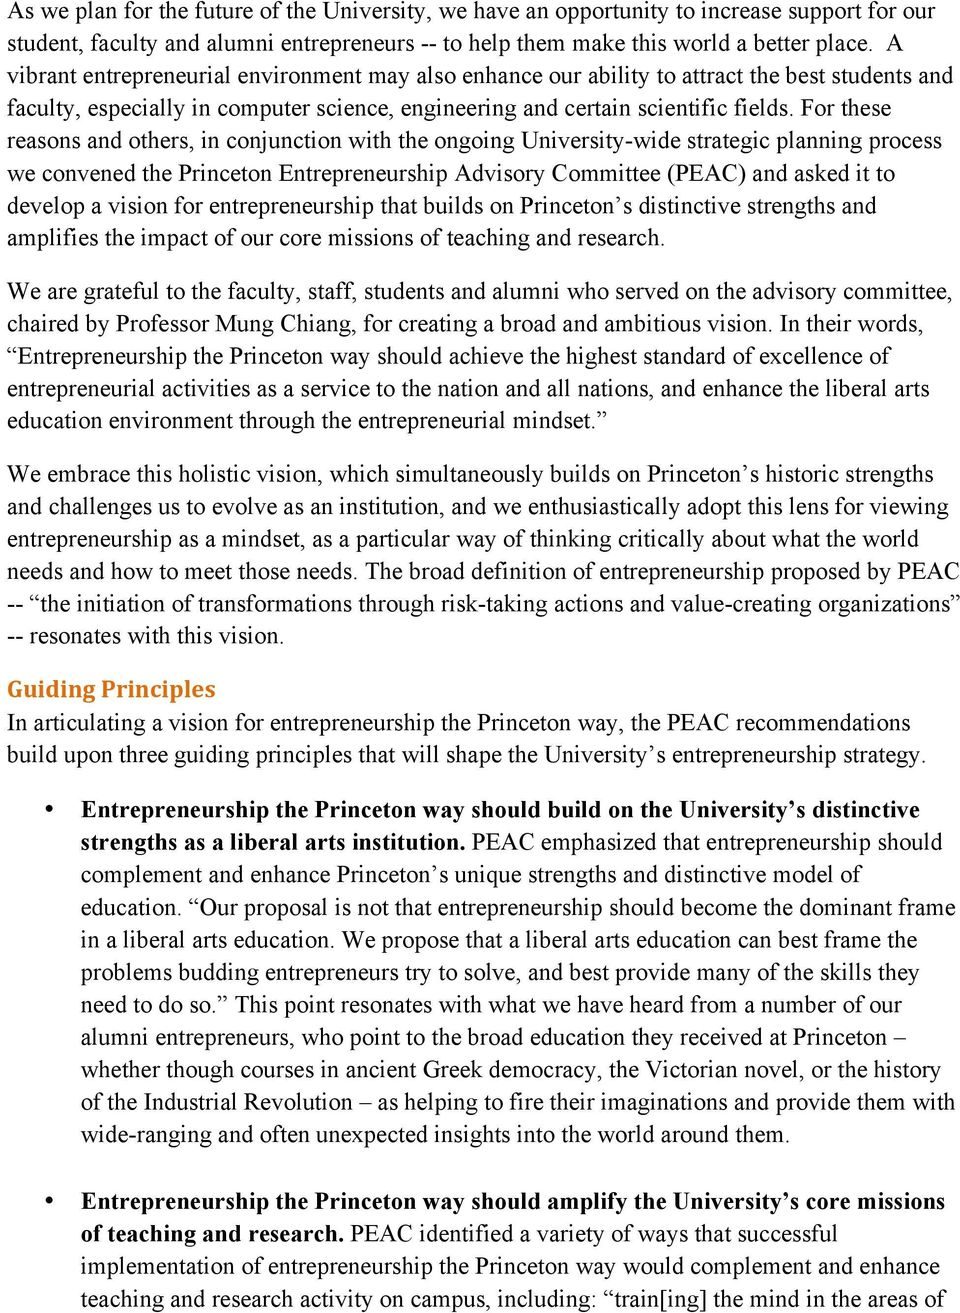 For these reasons and others, in conjunction with the ongoing University-wide strategic planning process we convened the Princeton Entrepreneurship Advisory Committee (PEAC) and asked it to develop a